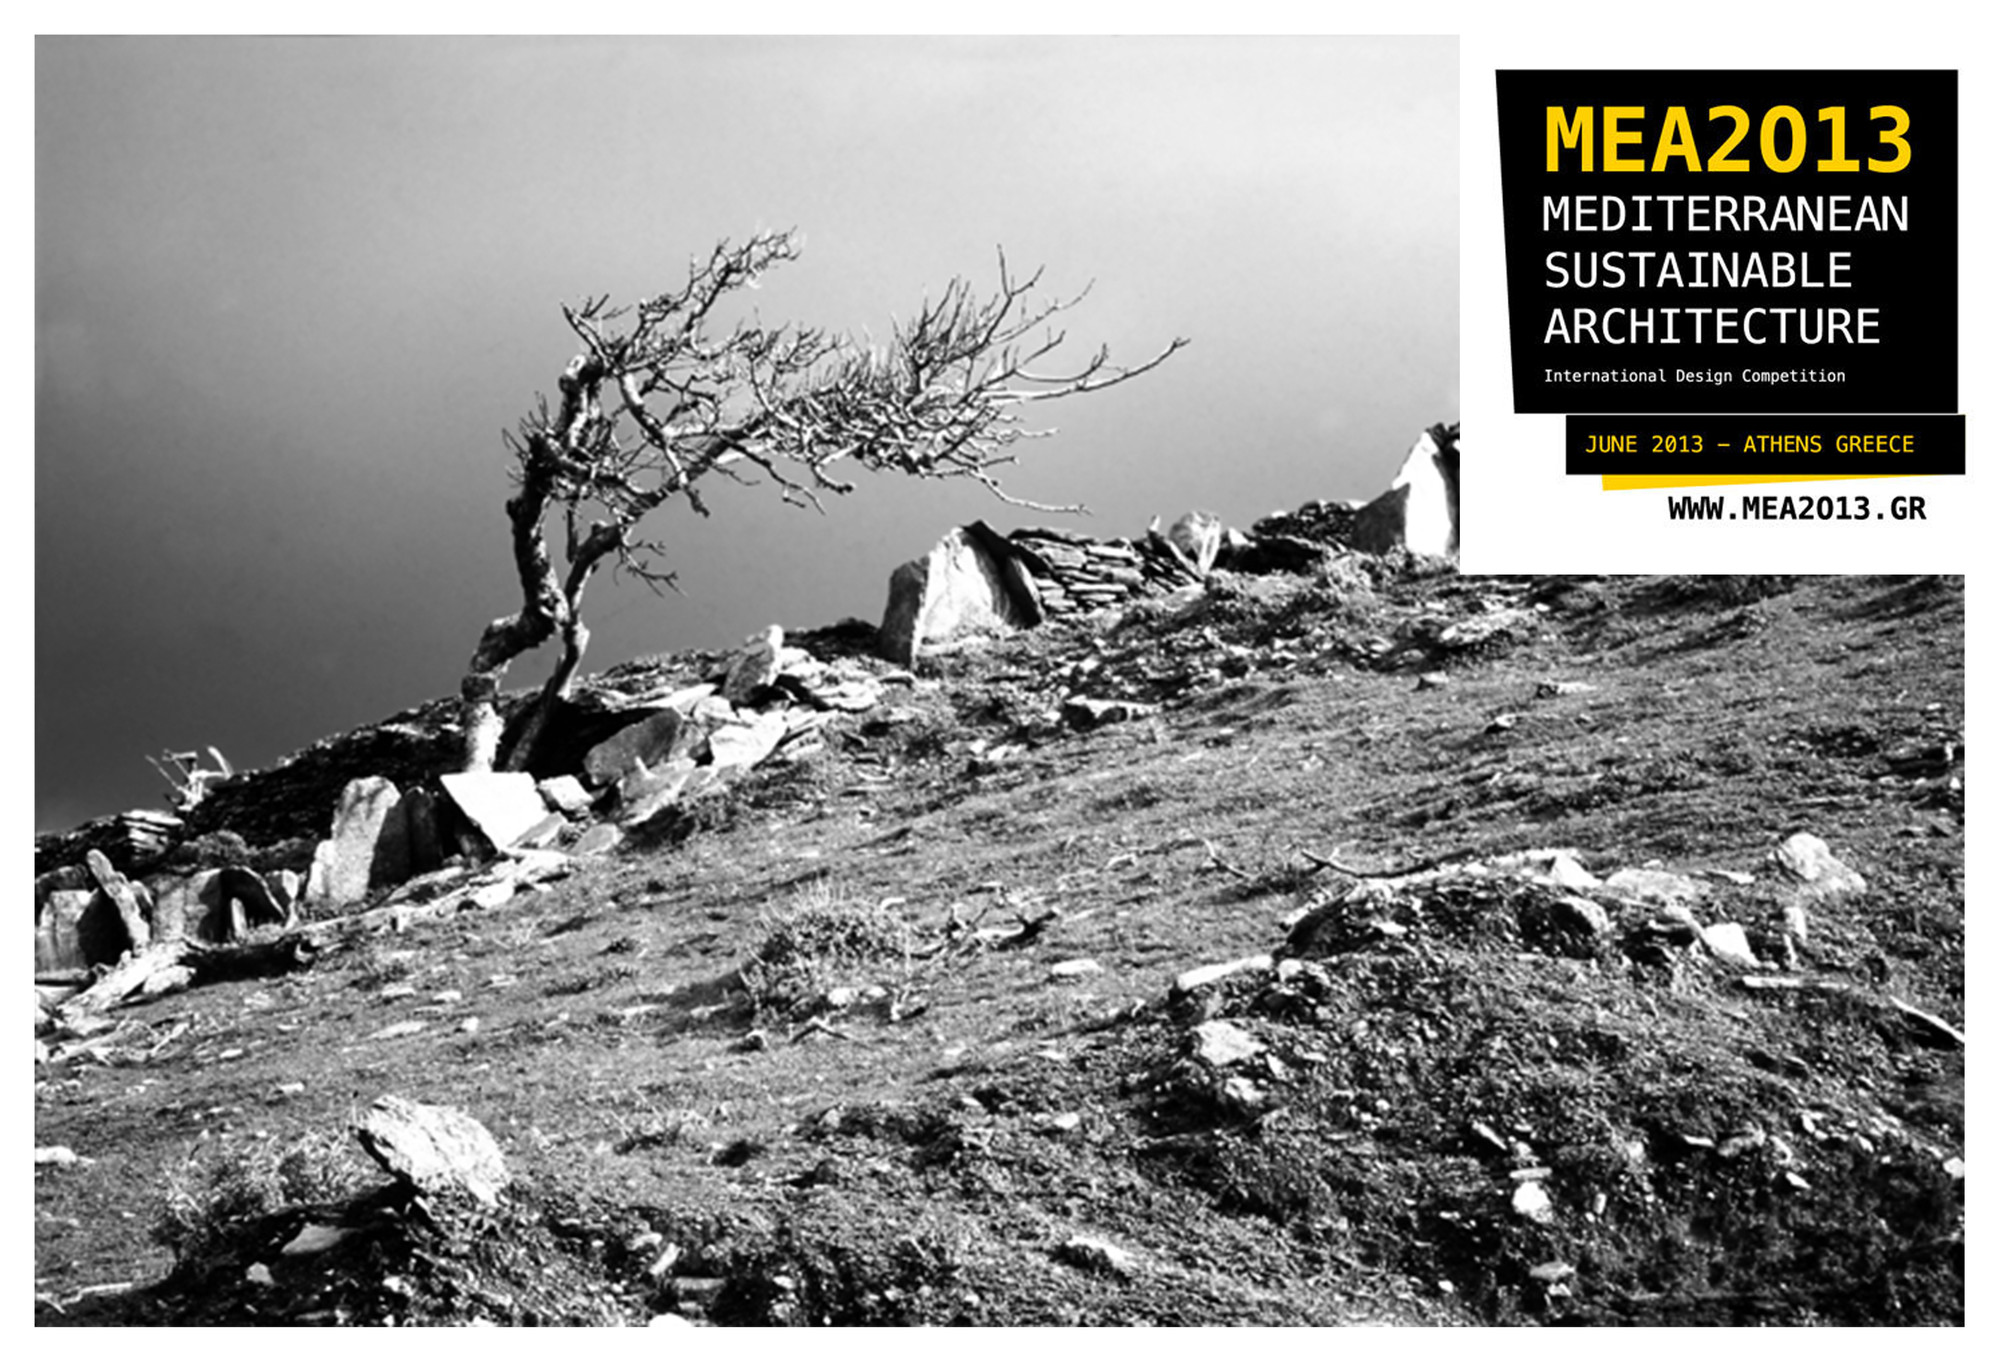 LAST CALL / Mediterranean Sustainable Architecture Awards 2013, Courtesy of MEA2013